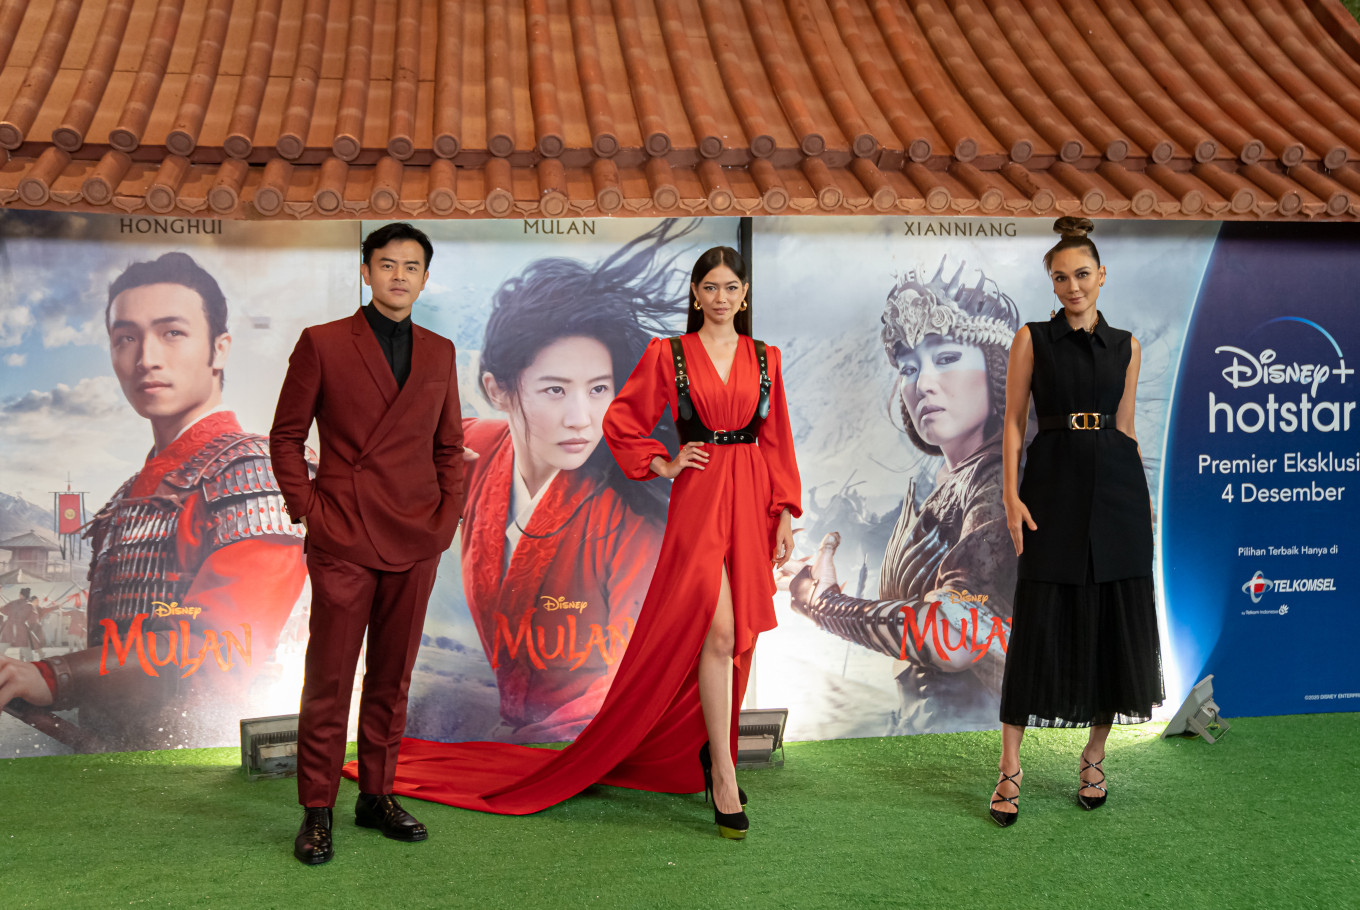 Indonesian performers share experiences as voice actors of Disney's 'Mulan'